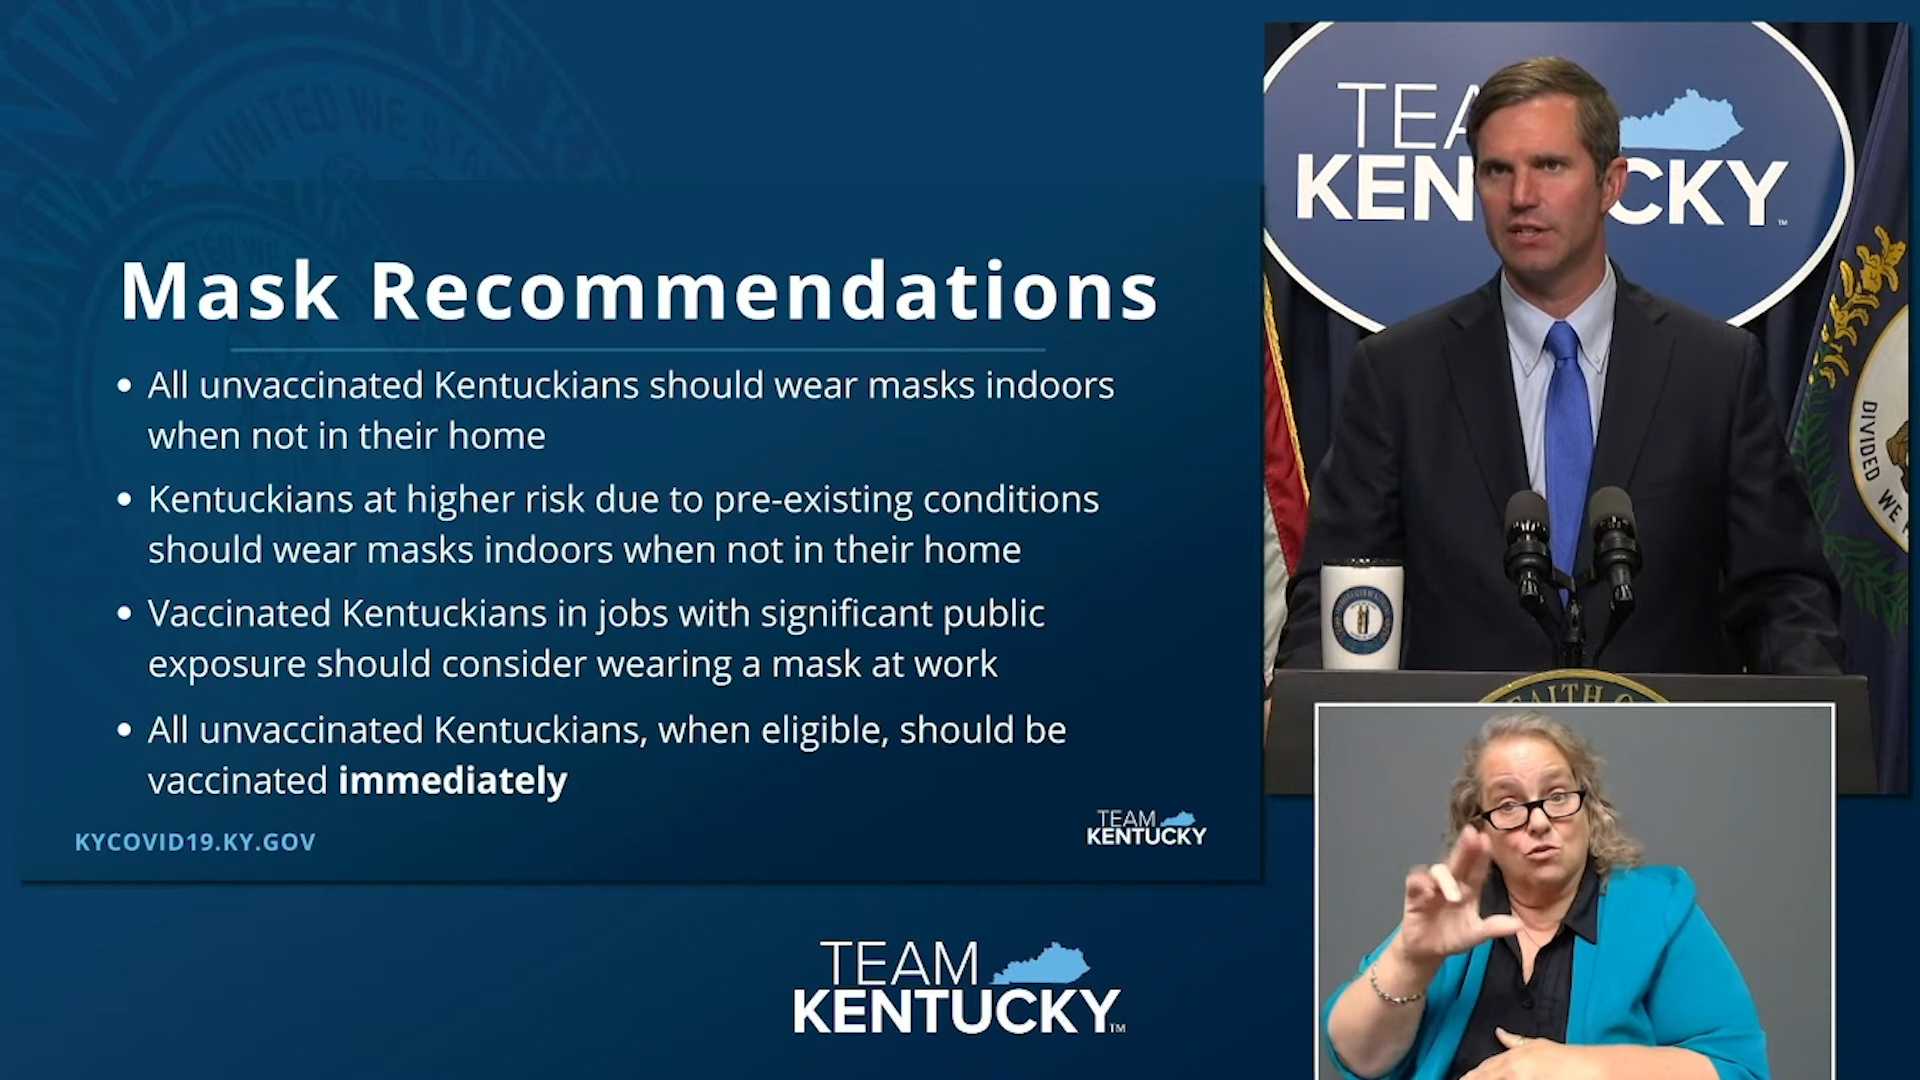 Gov. Andy Beshear offered suggestions for Kentuckians to protect themselves from the coronavirus, which is once again beginning to surge, largely due to a mutation called the delta variant.